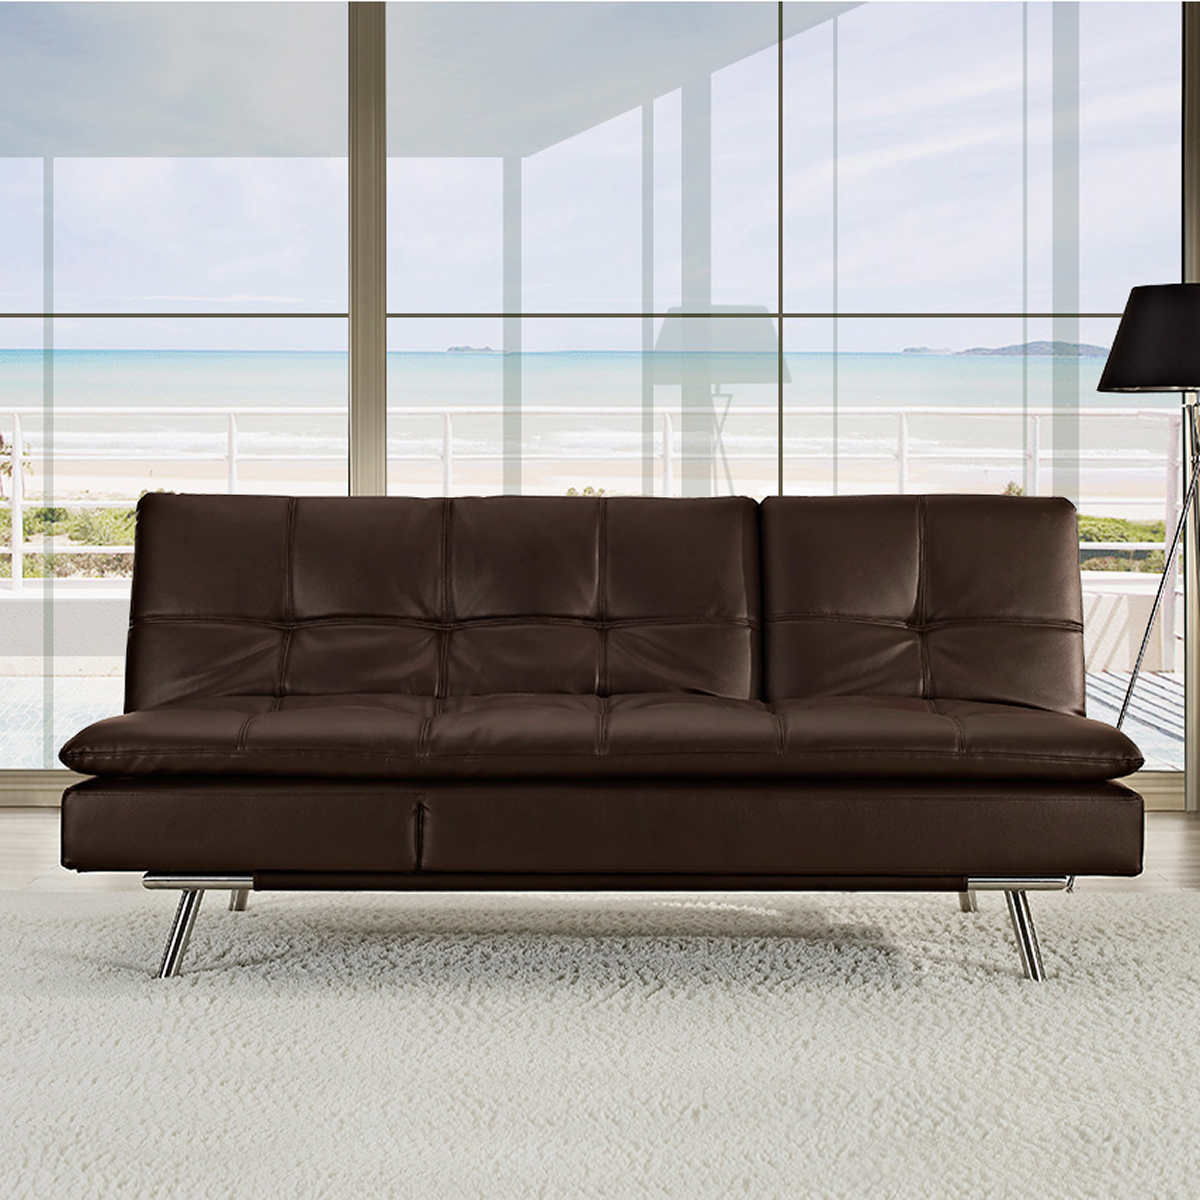 Image of: Stylish Costco Futon Sofa